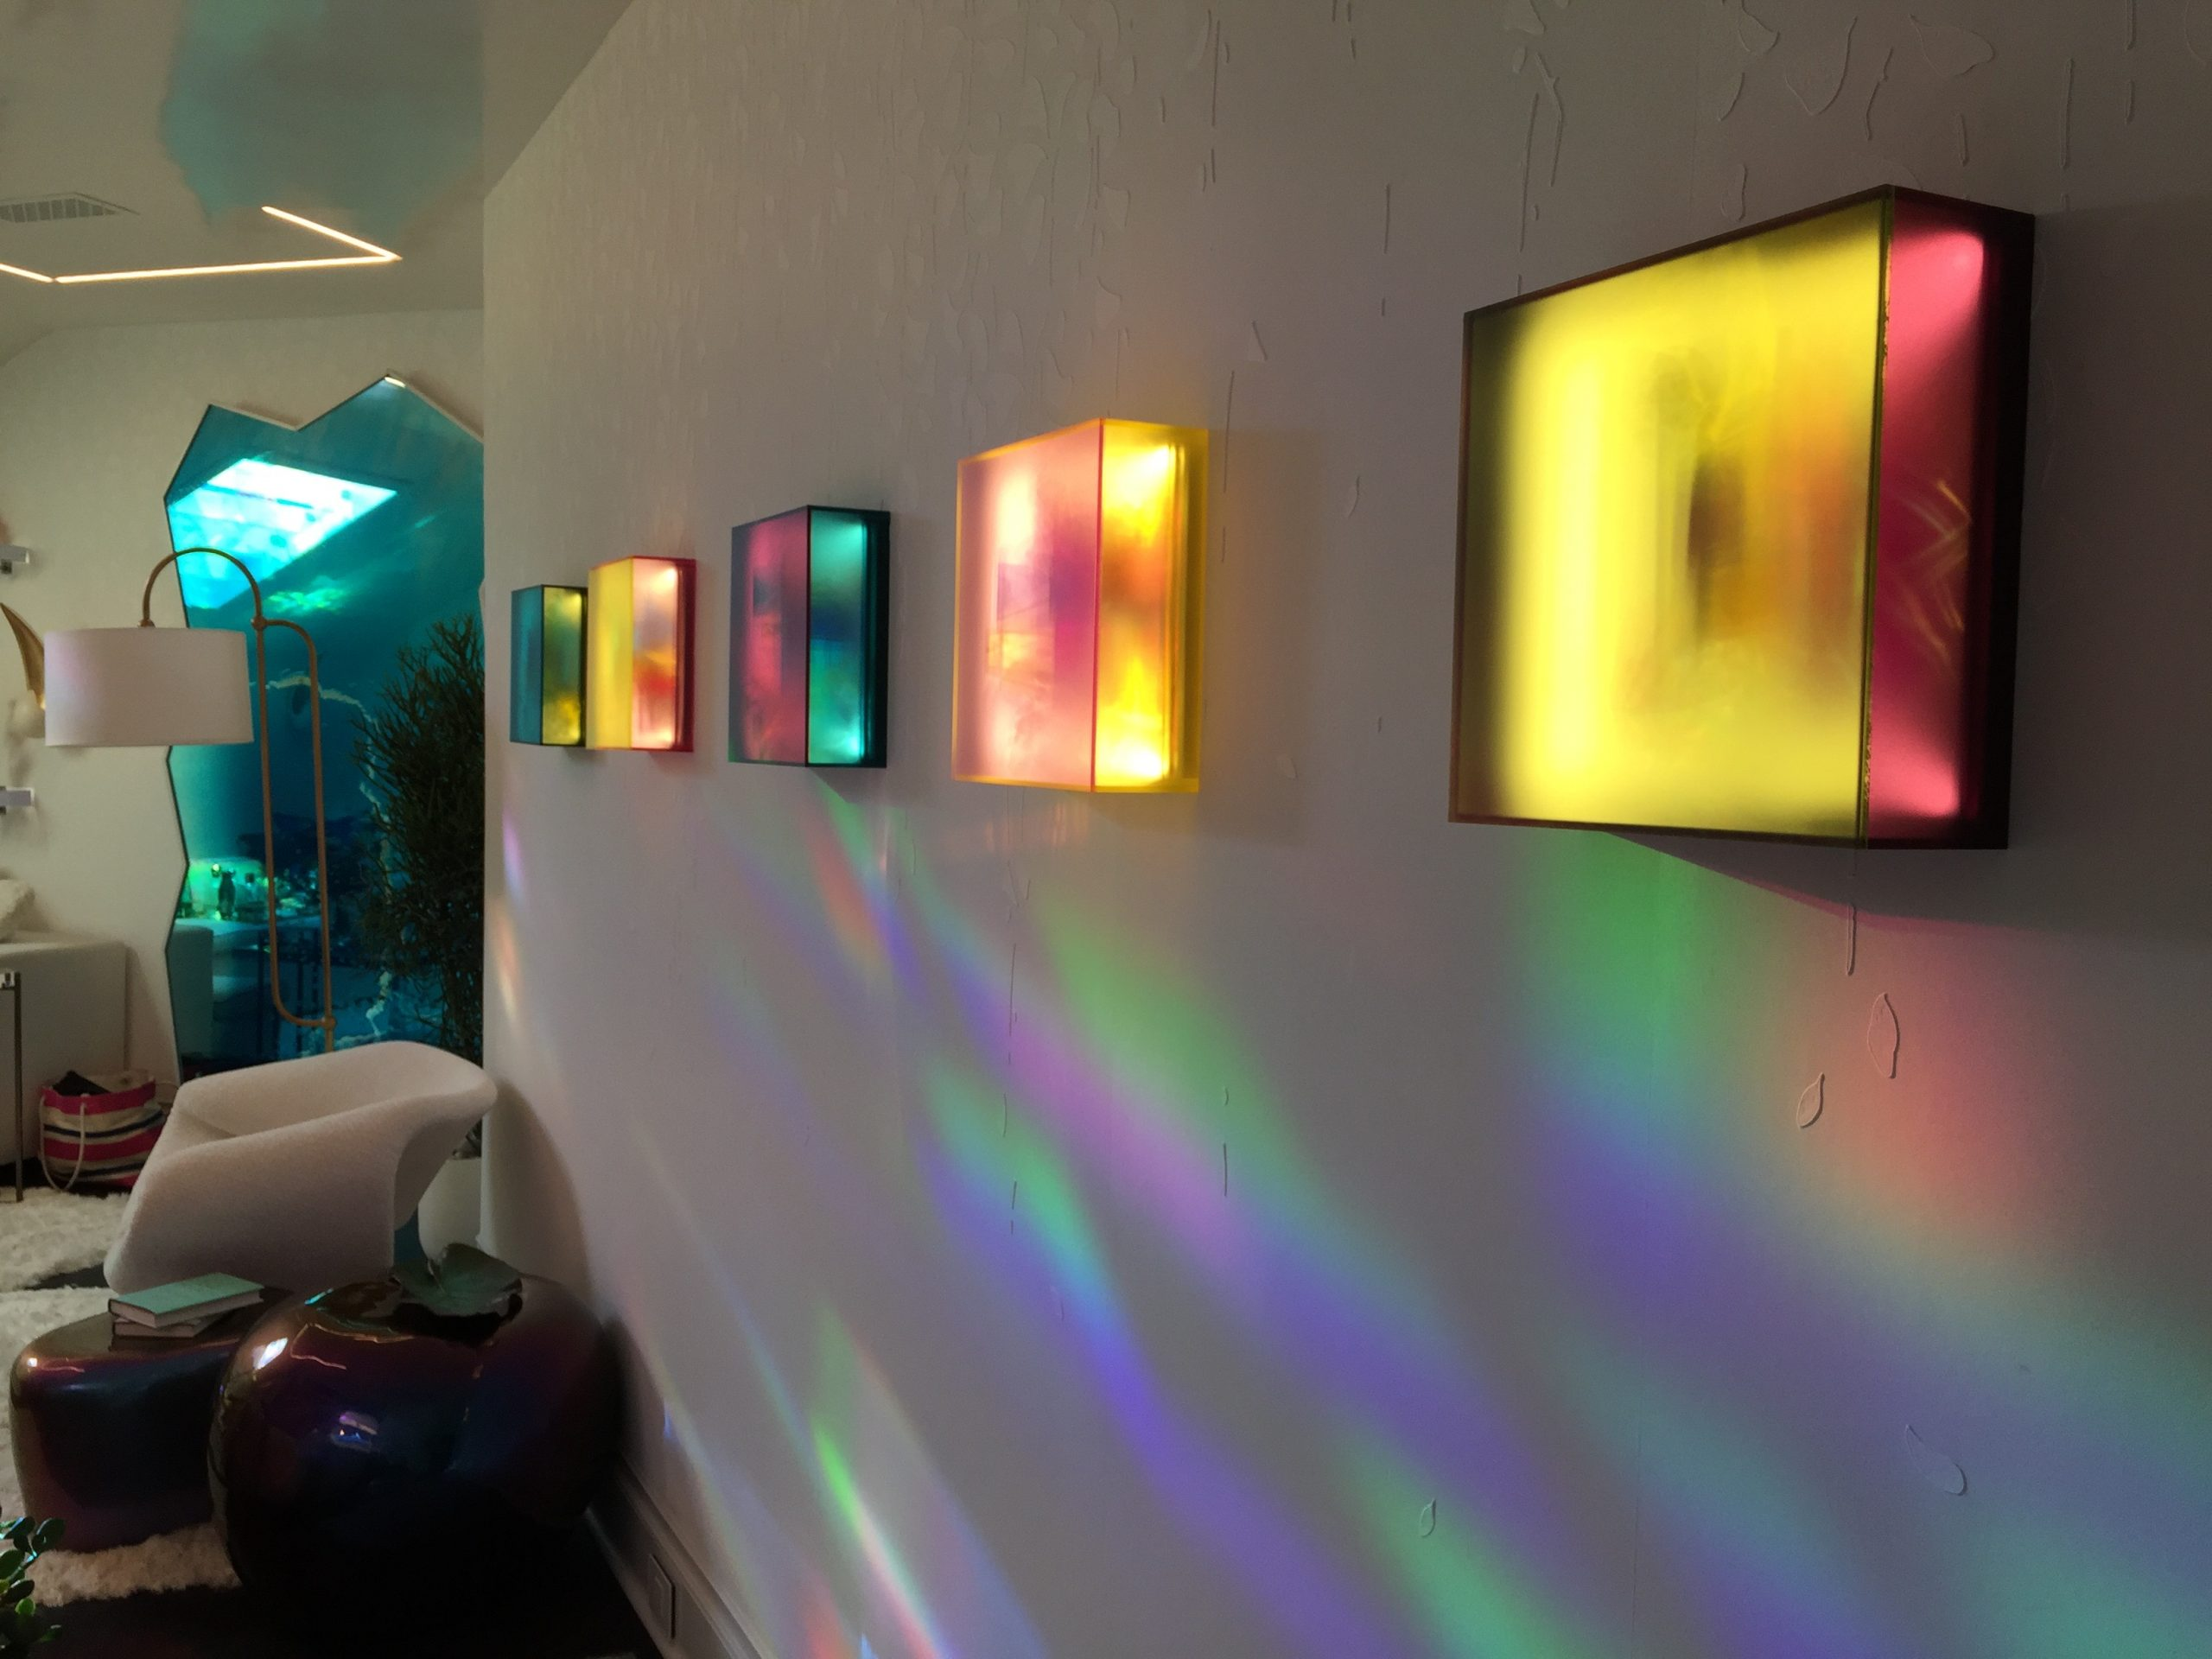 Opaline Skies and Submerged light works